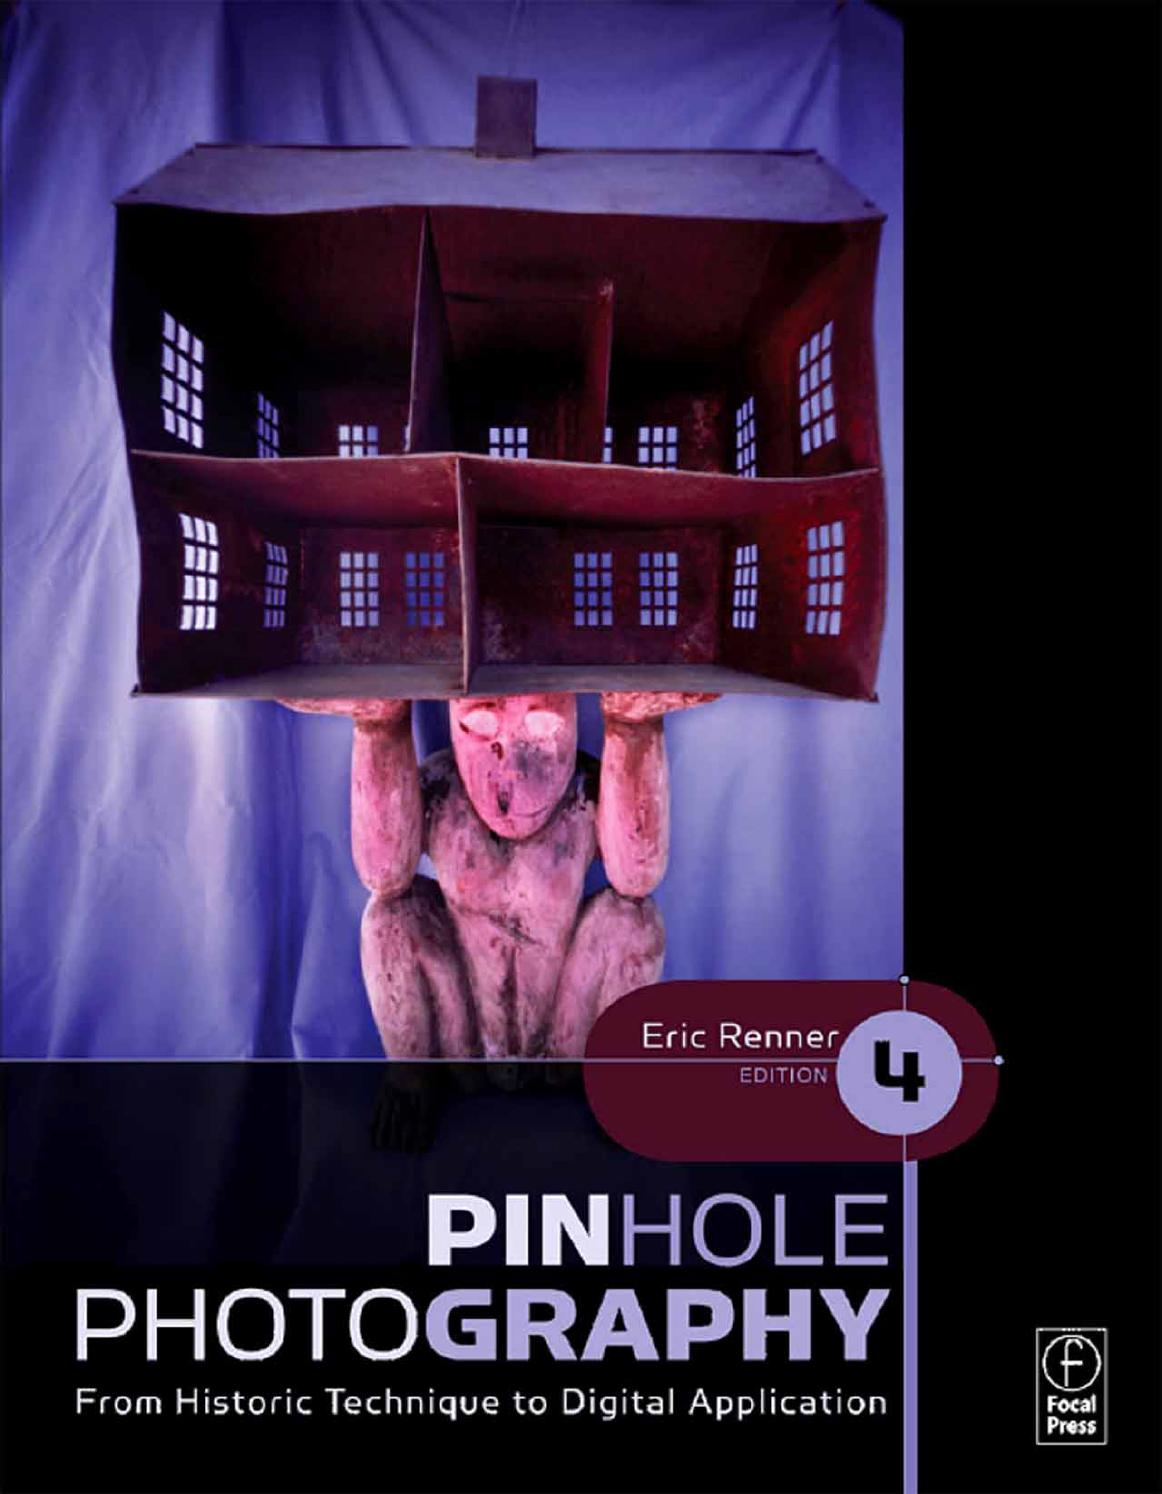 Pinhole Photography From Historic Technique To Digital Application Snap Circuits Pro 500 Scientificsonlinecom By Estenopeic Issuu